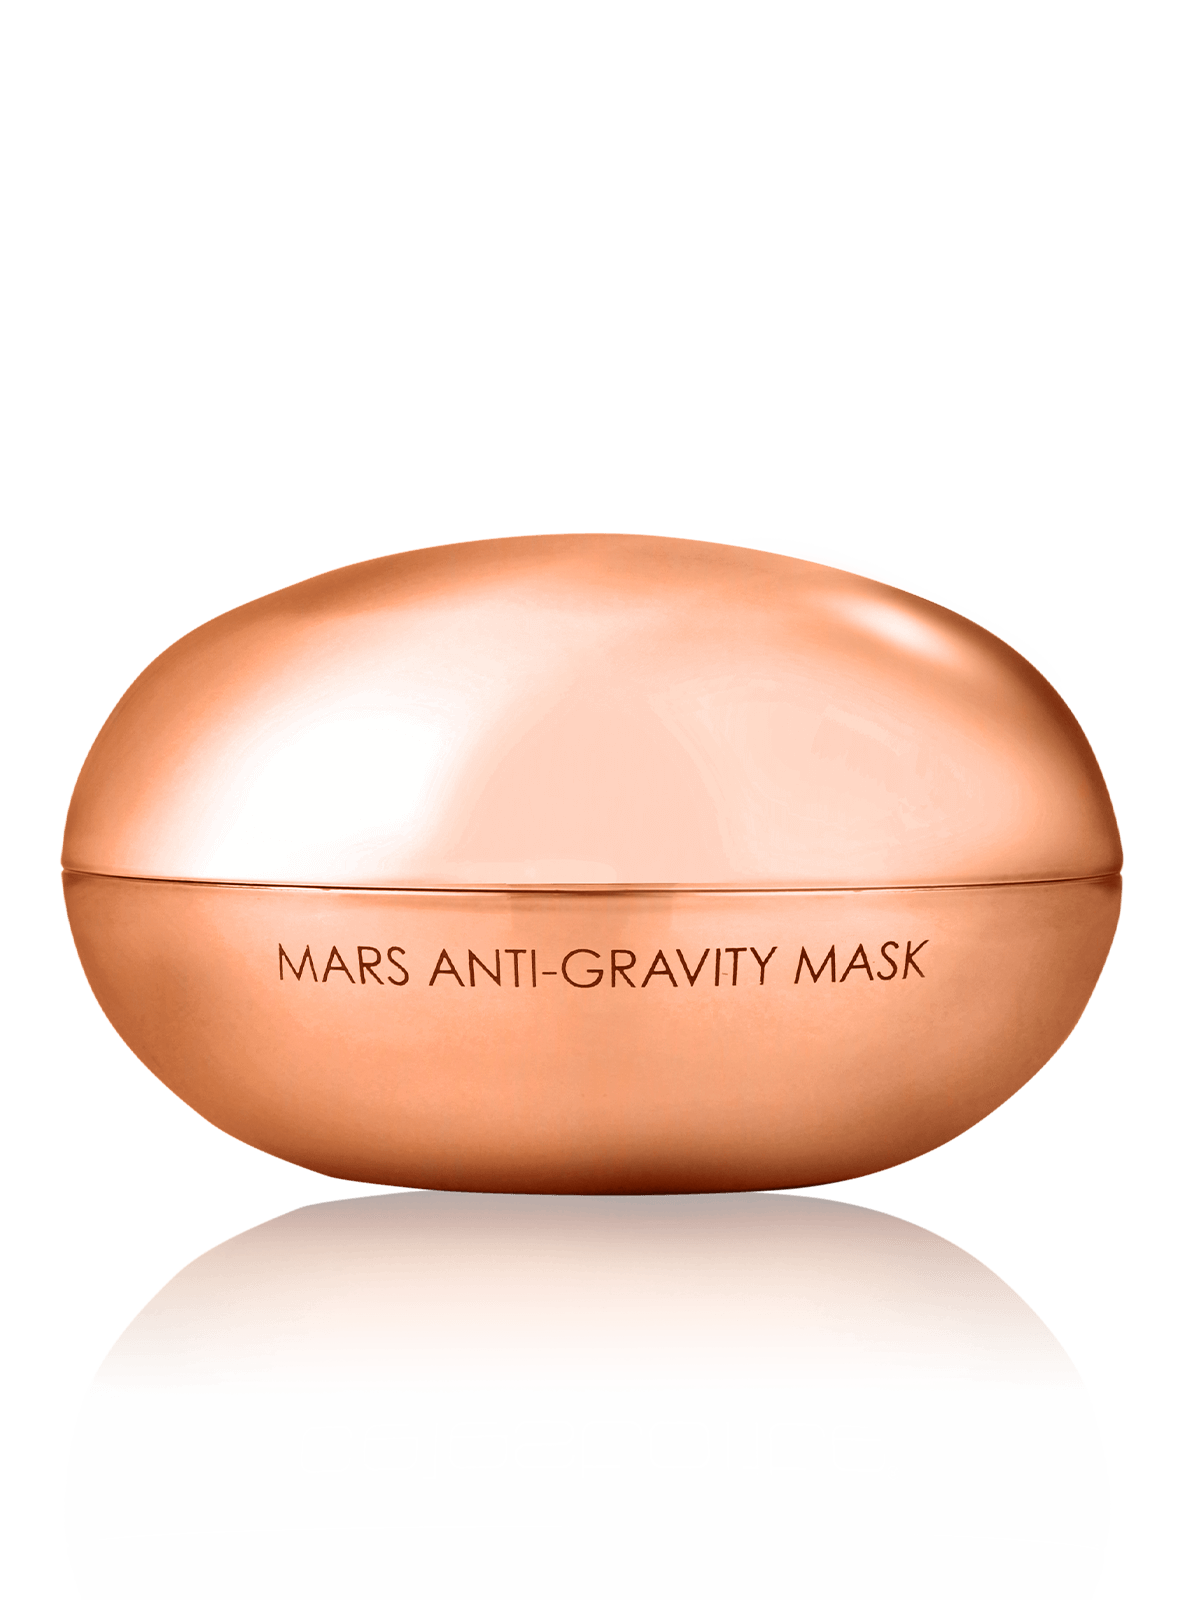 Mars Anti-Gravity Mask back